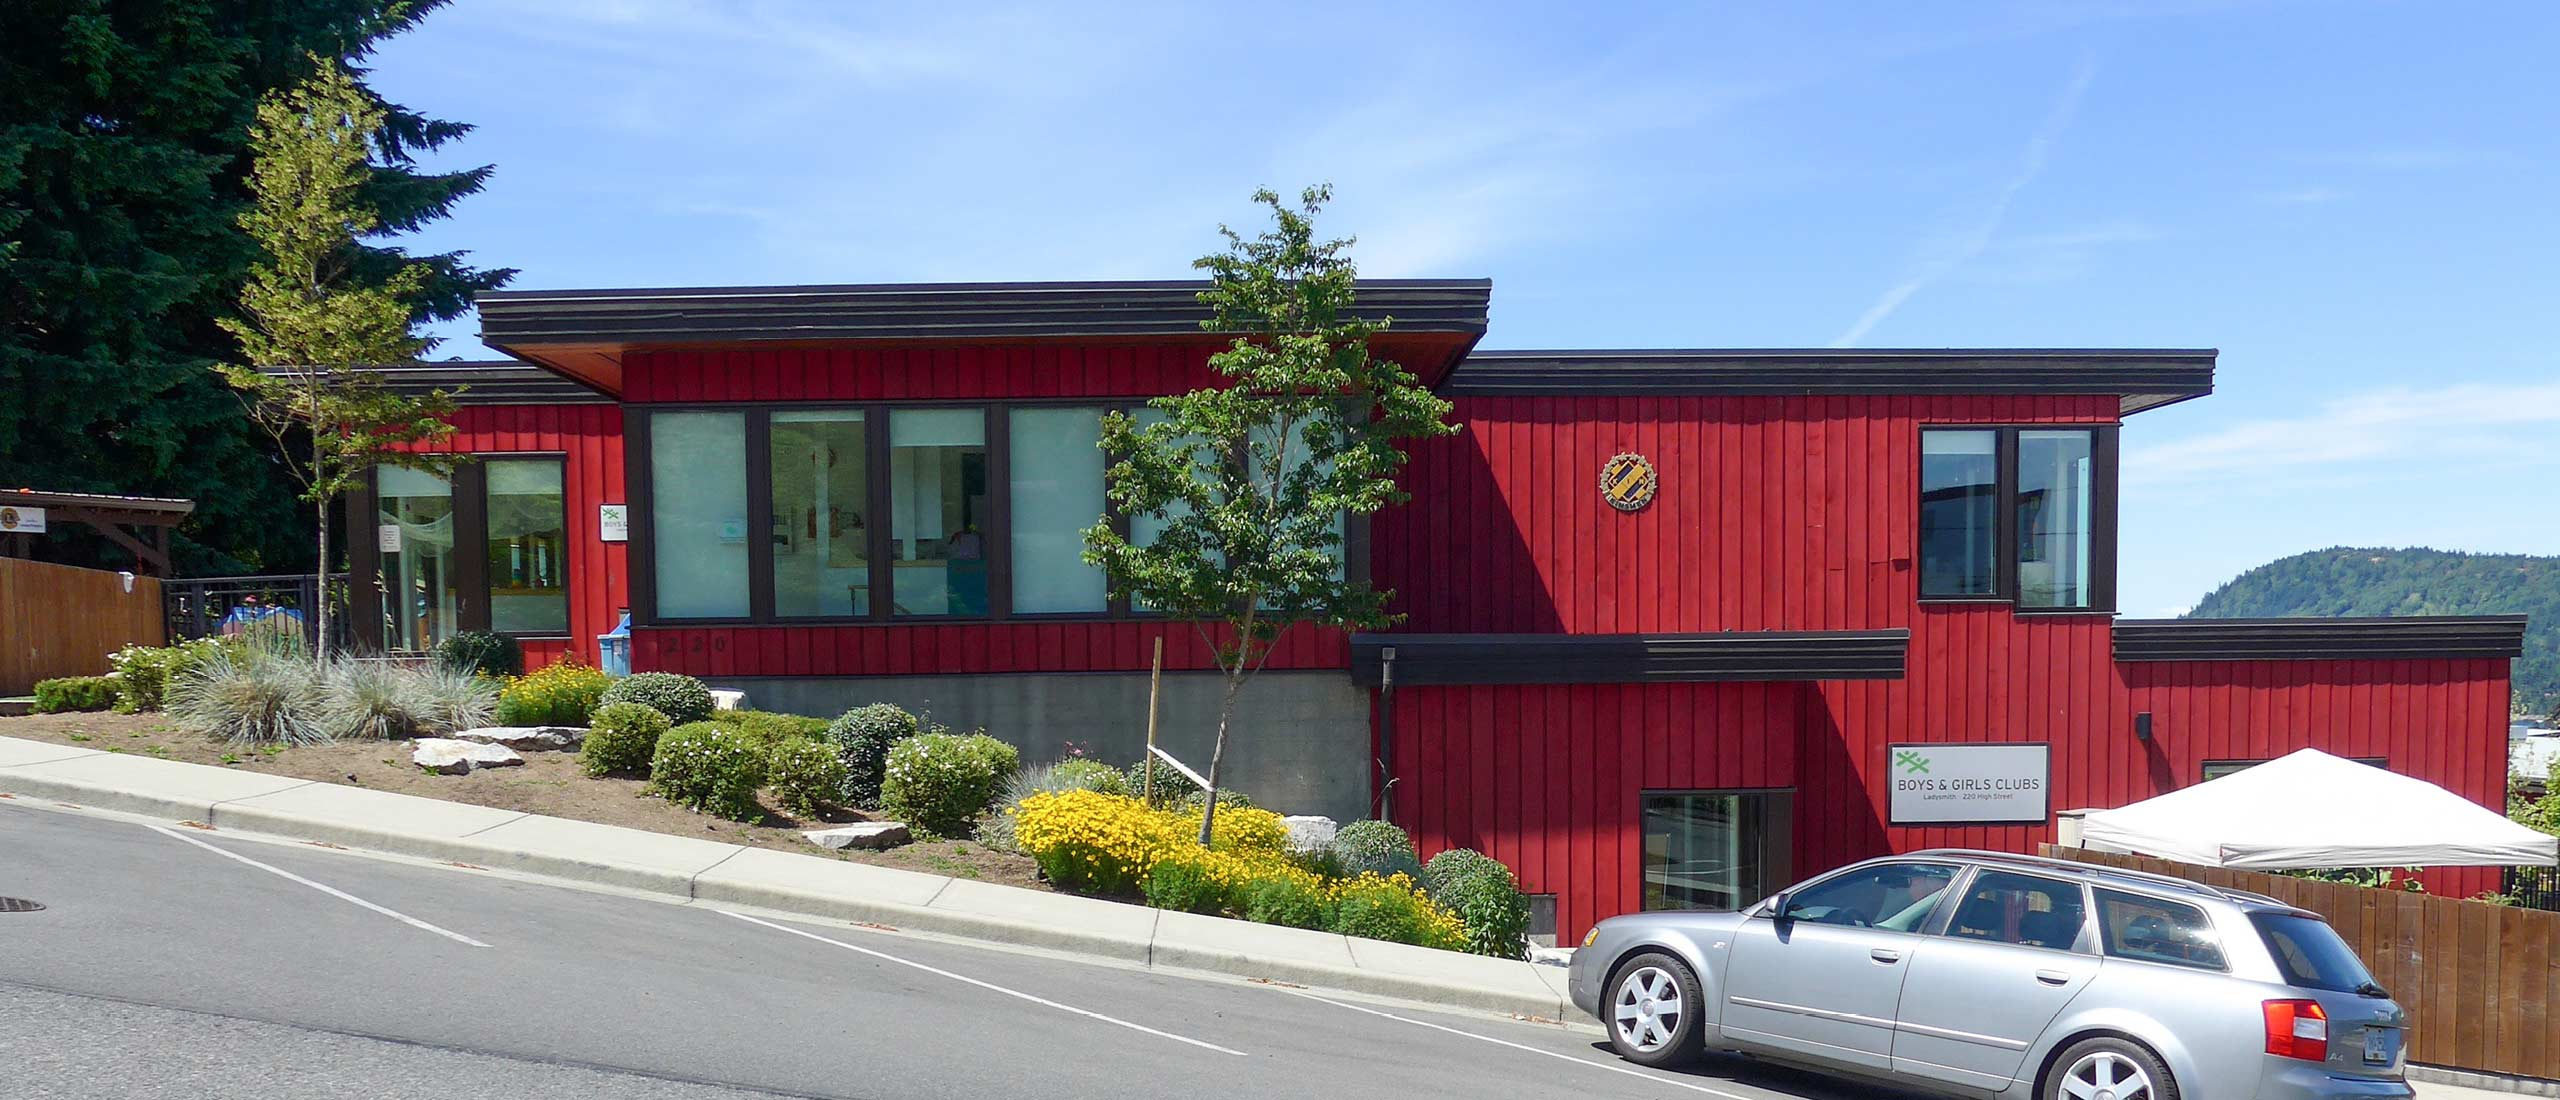 Ladysmith Resource Centre © DAU